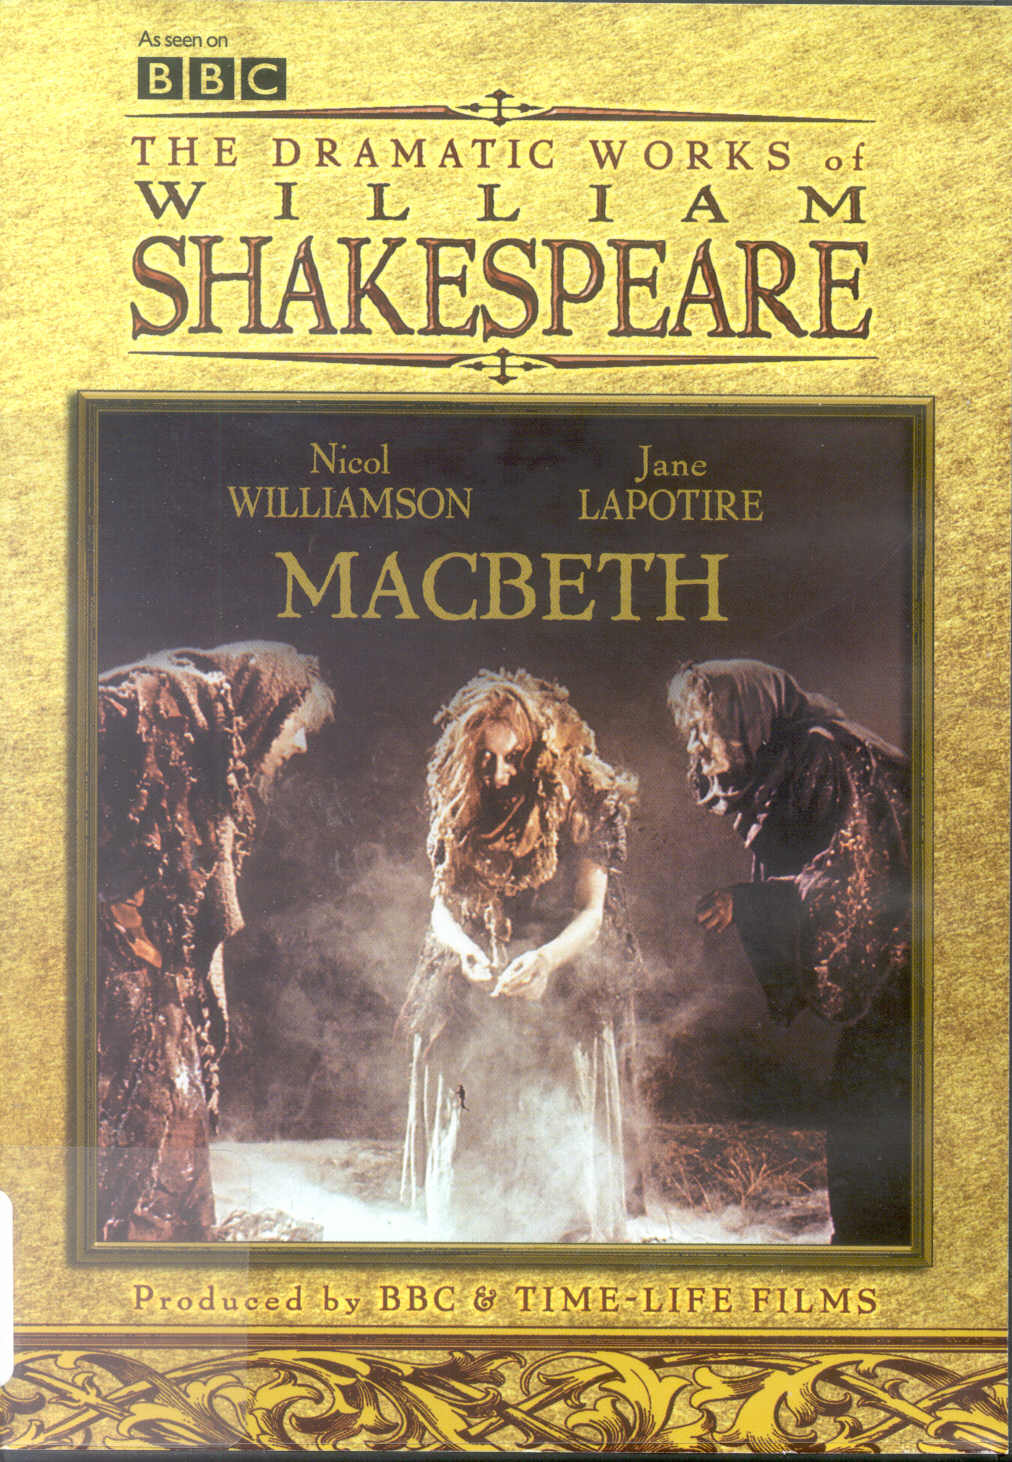 william shakespeares macbeth flatters james vi of scotland Macbeth, william shakespeare  it was most likely written during the reign of james i, who had been james vi of scotland before he succeeded to the english throne.